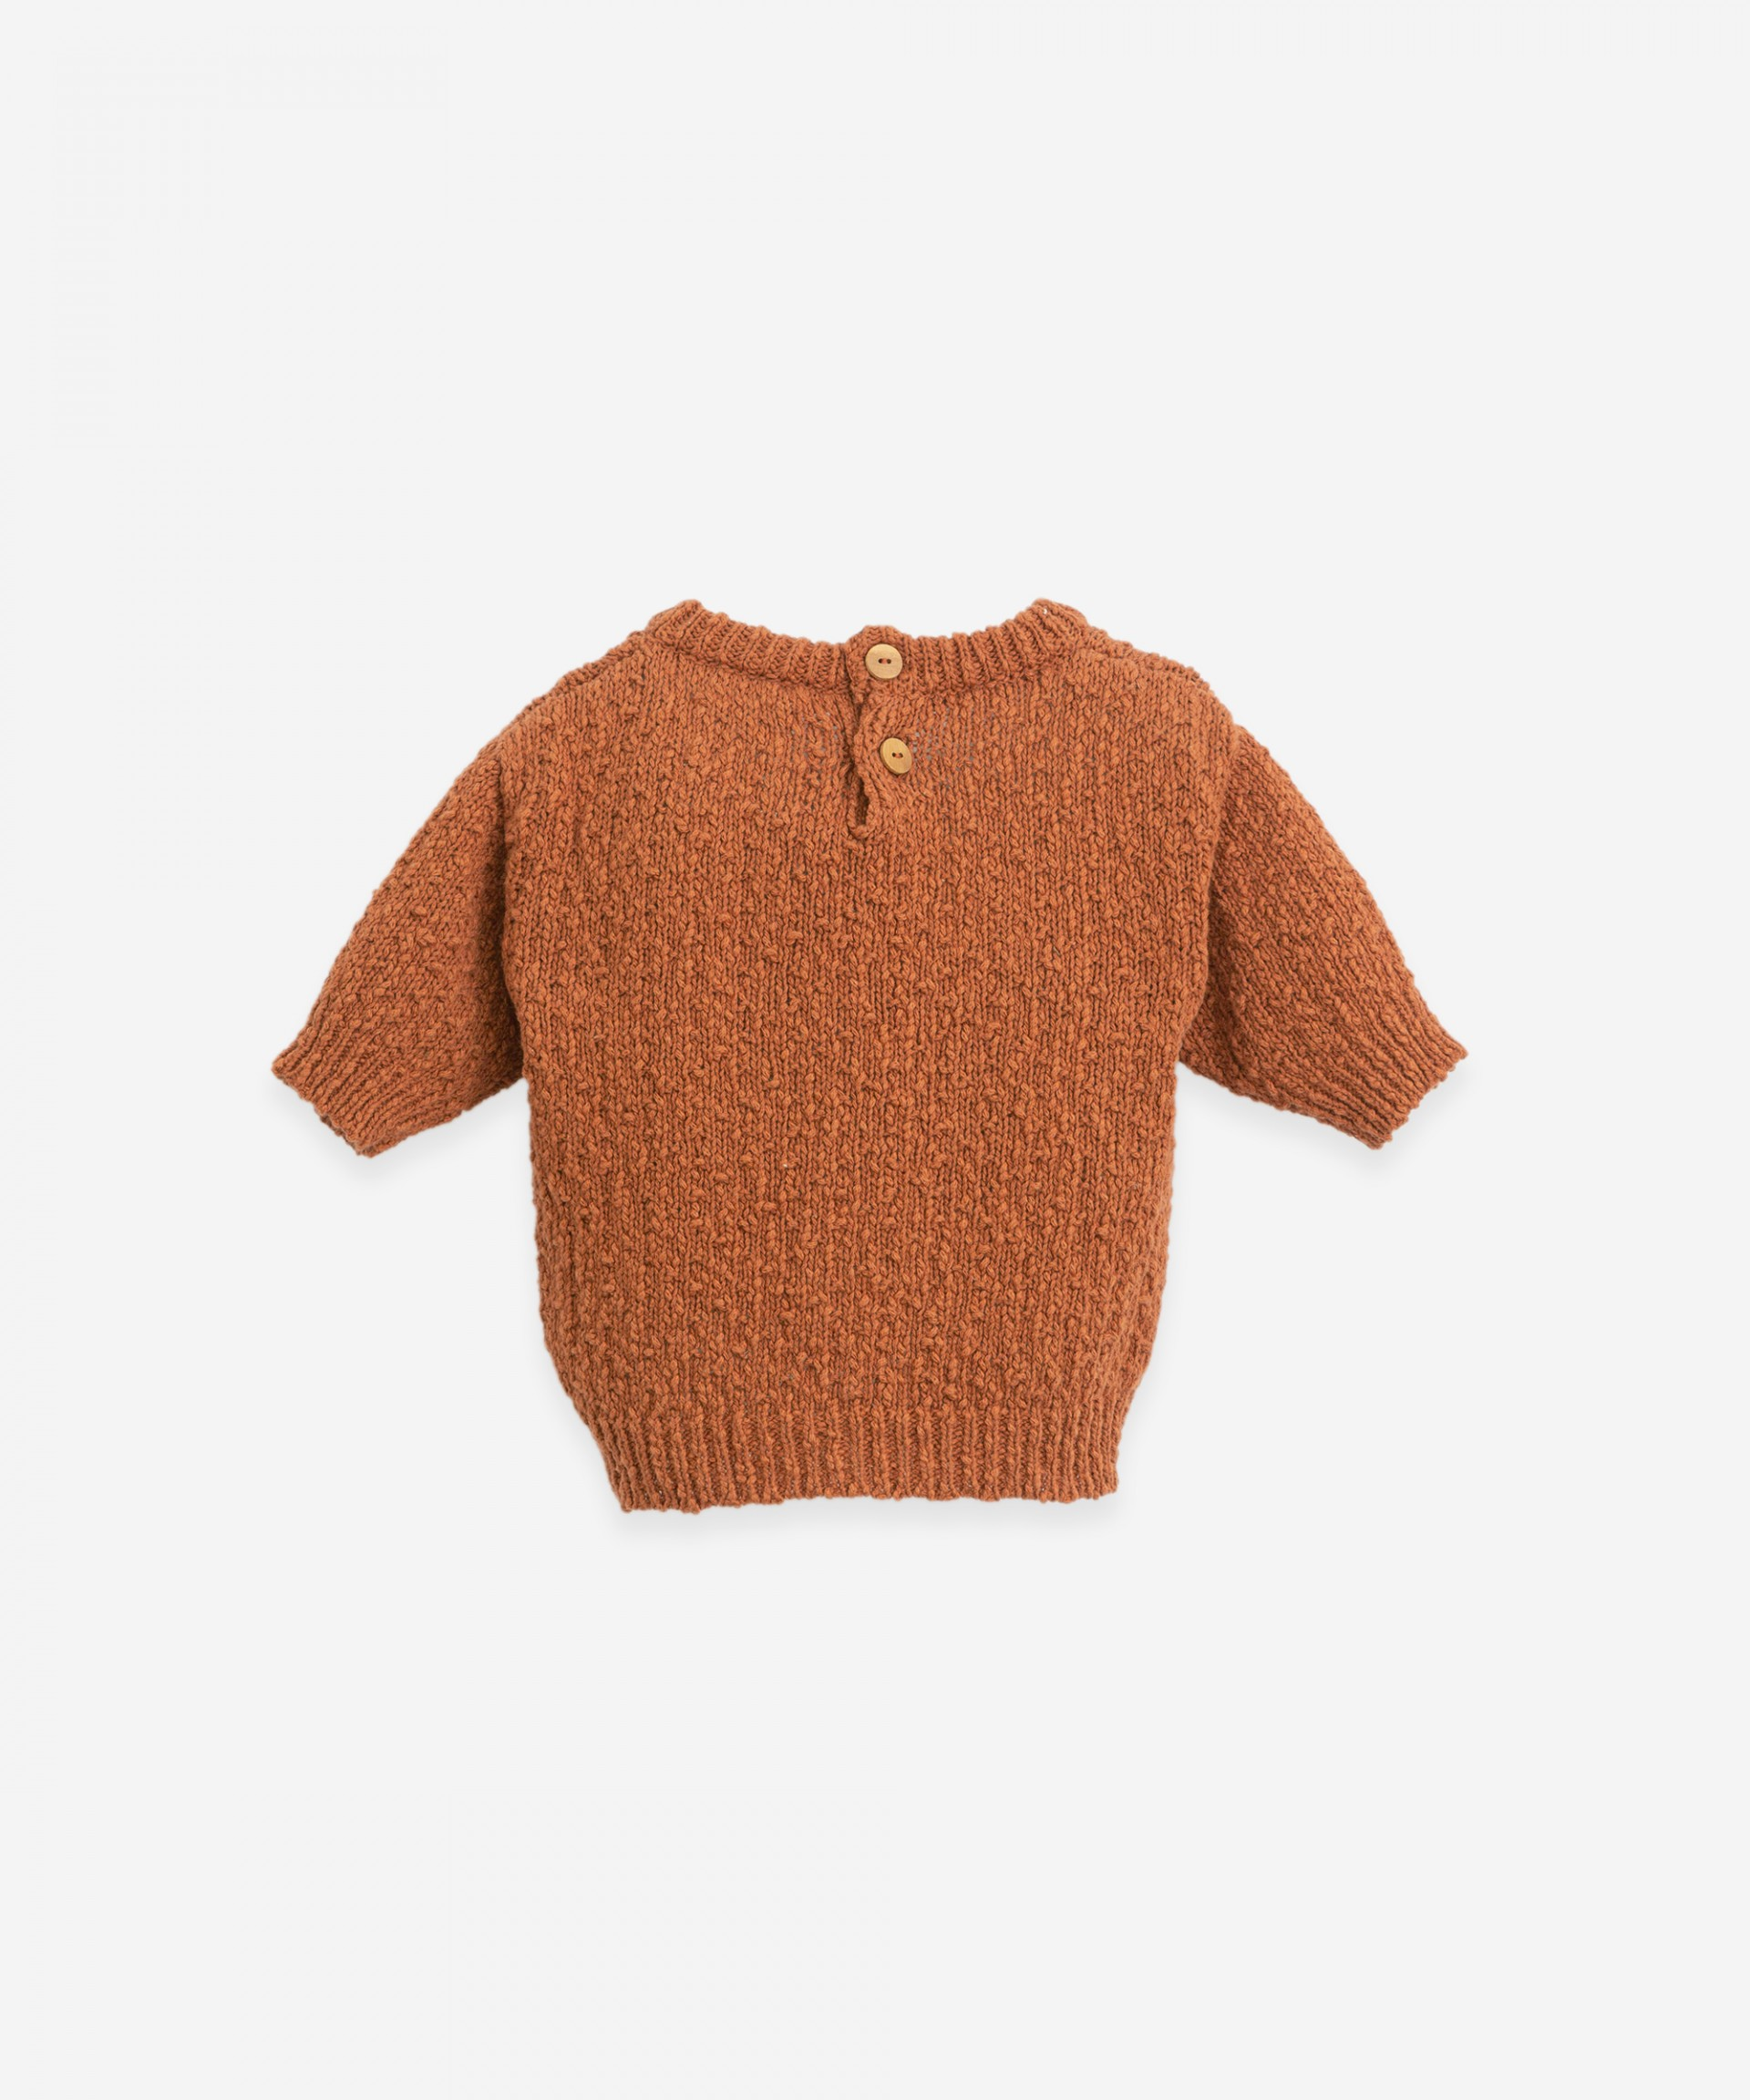 Knitted sweater | Botany